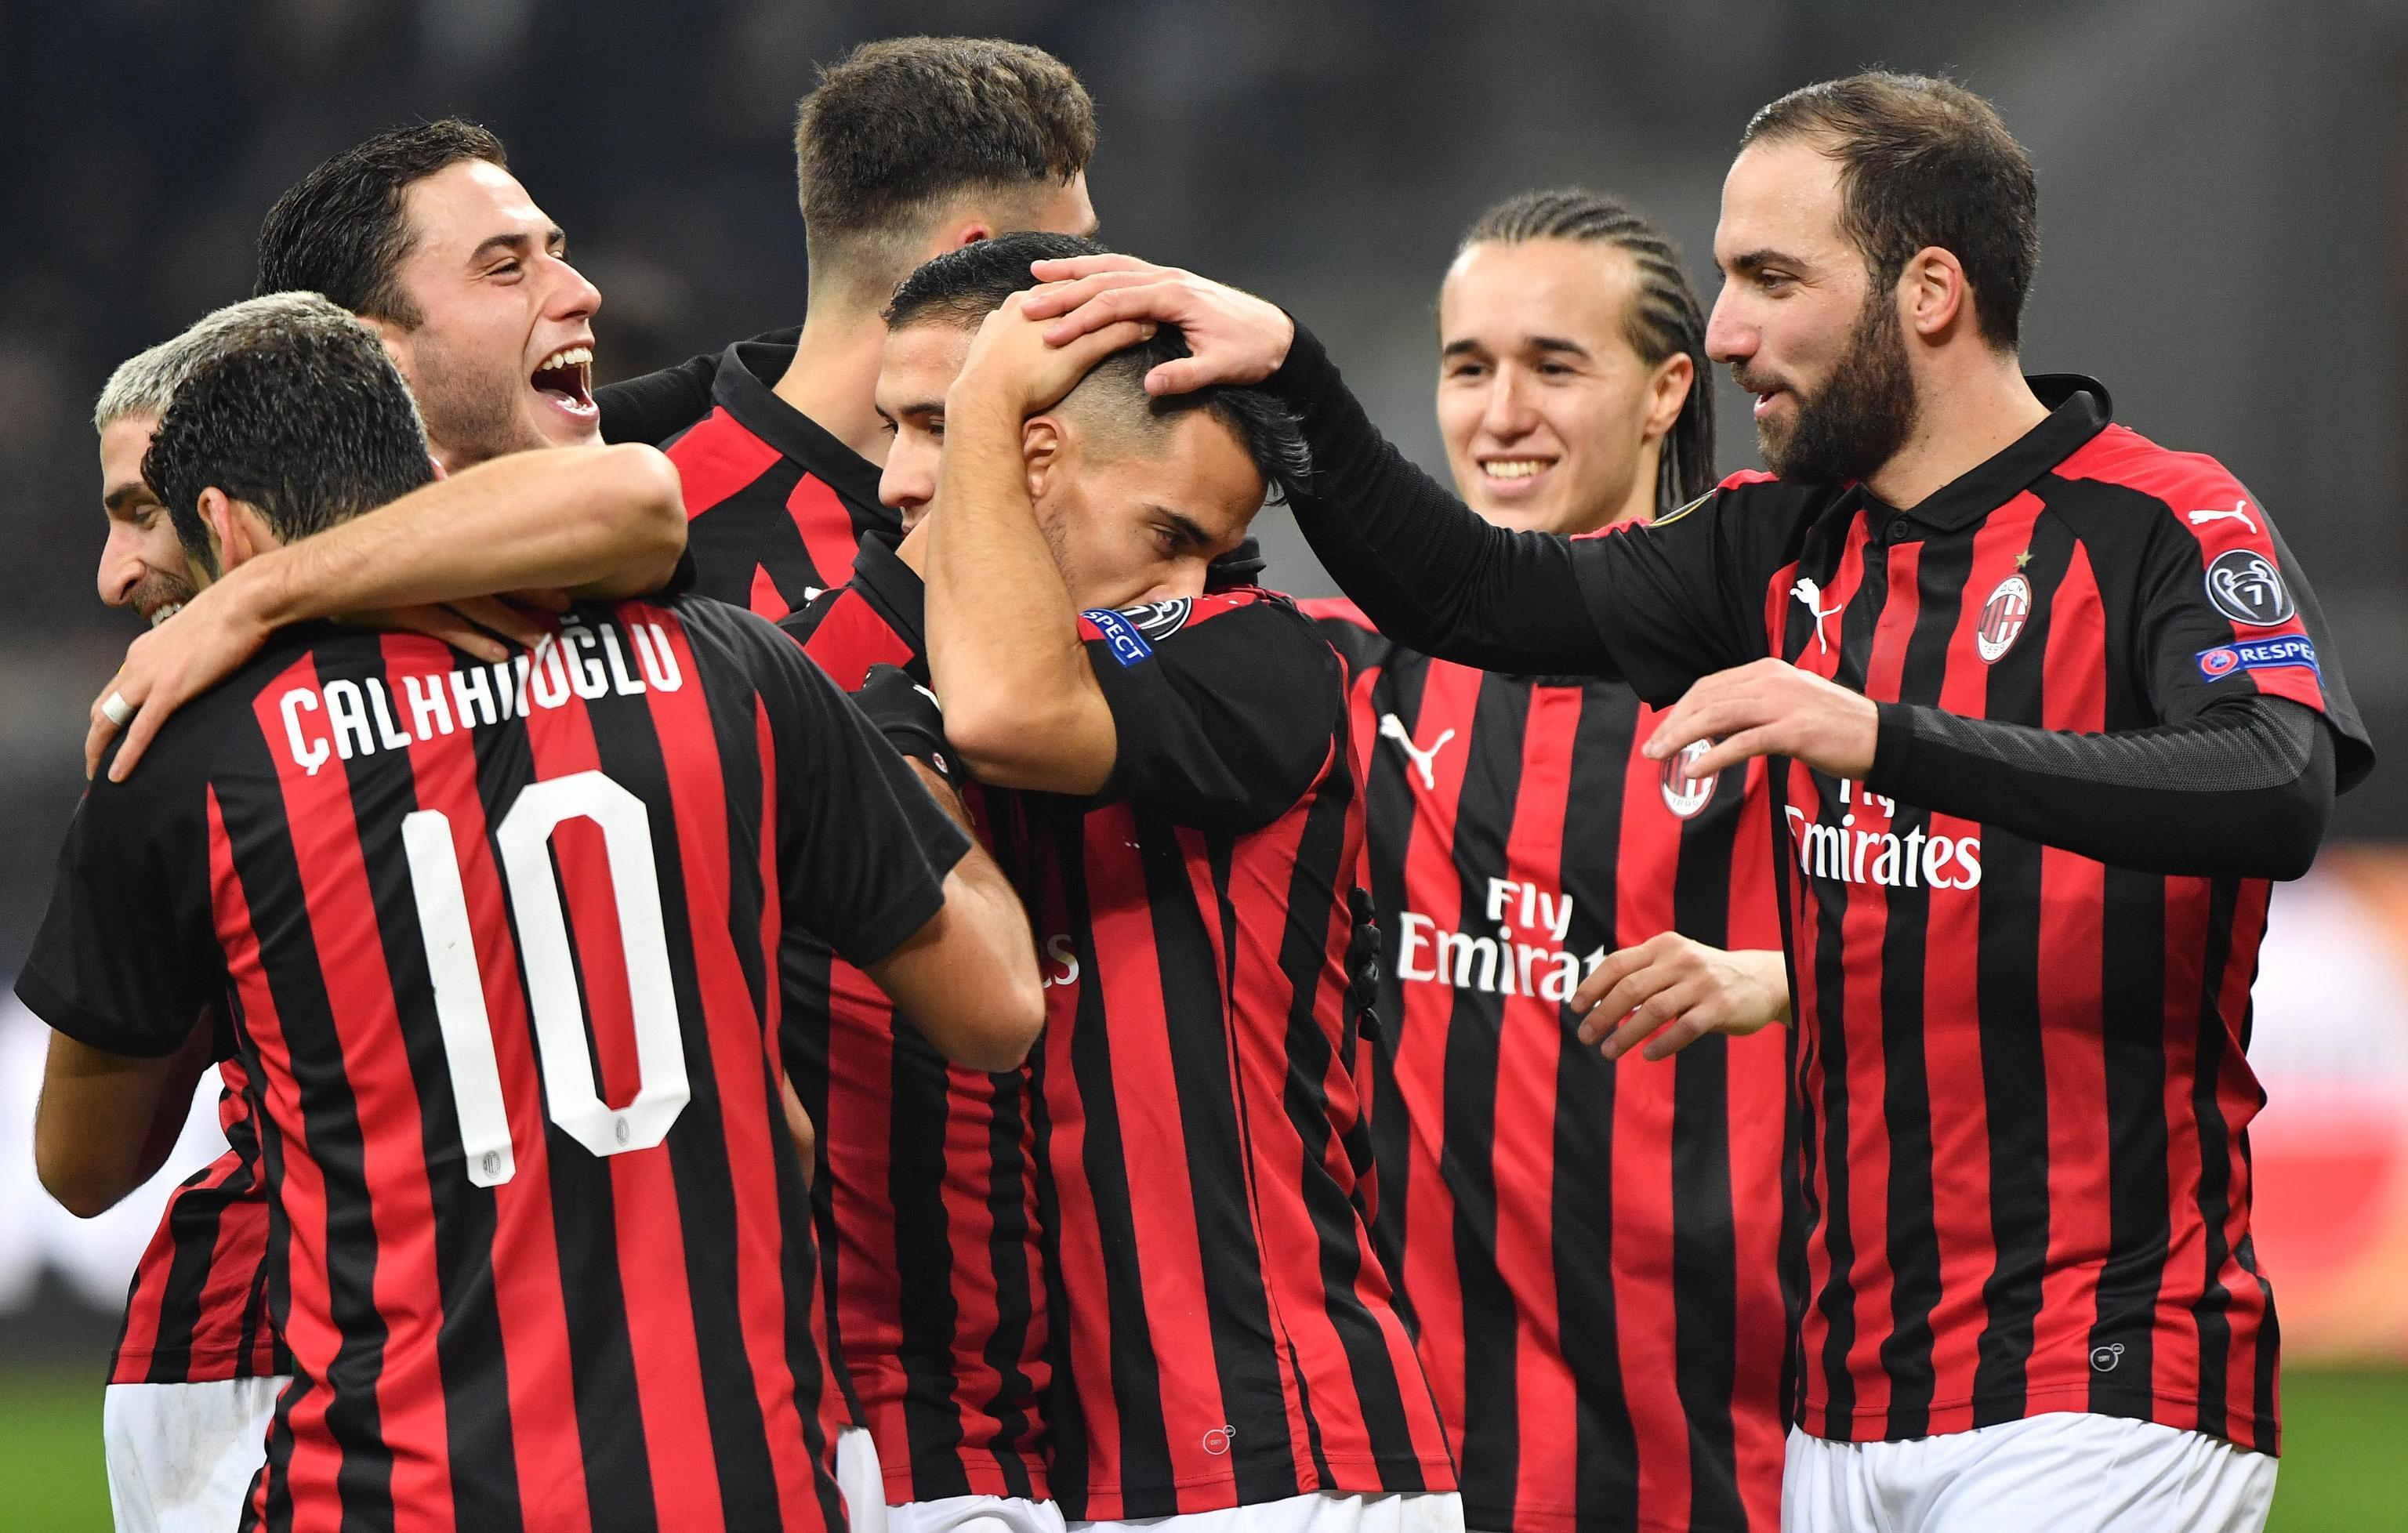 AC Milan vs Parma: Live stream, TV channel, kick-off time, team news for big Serie A game